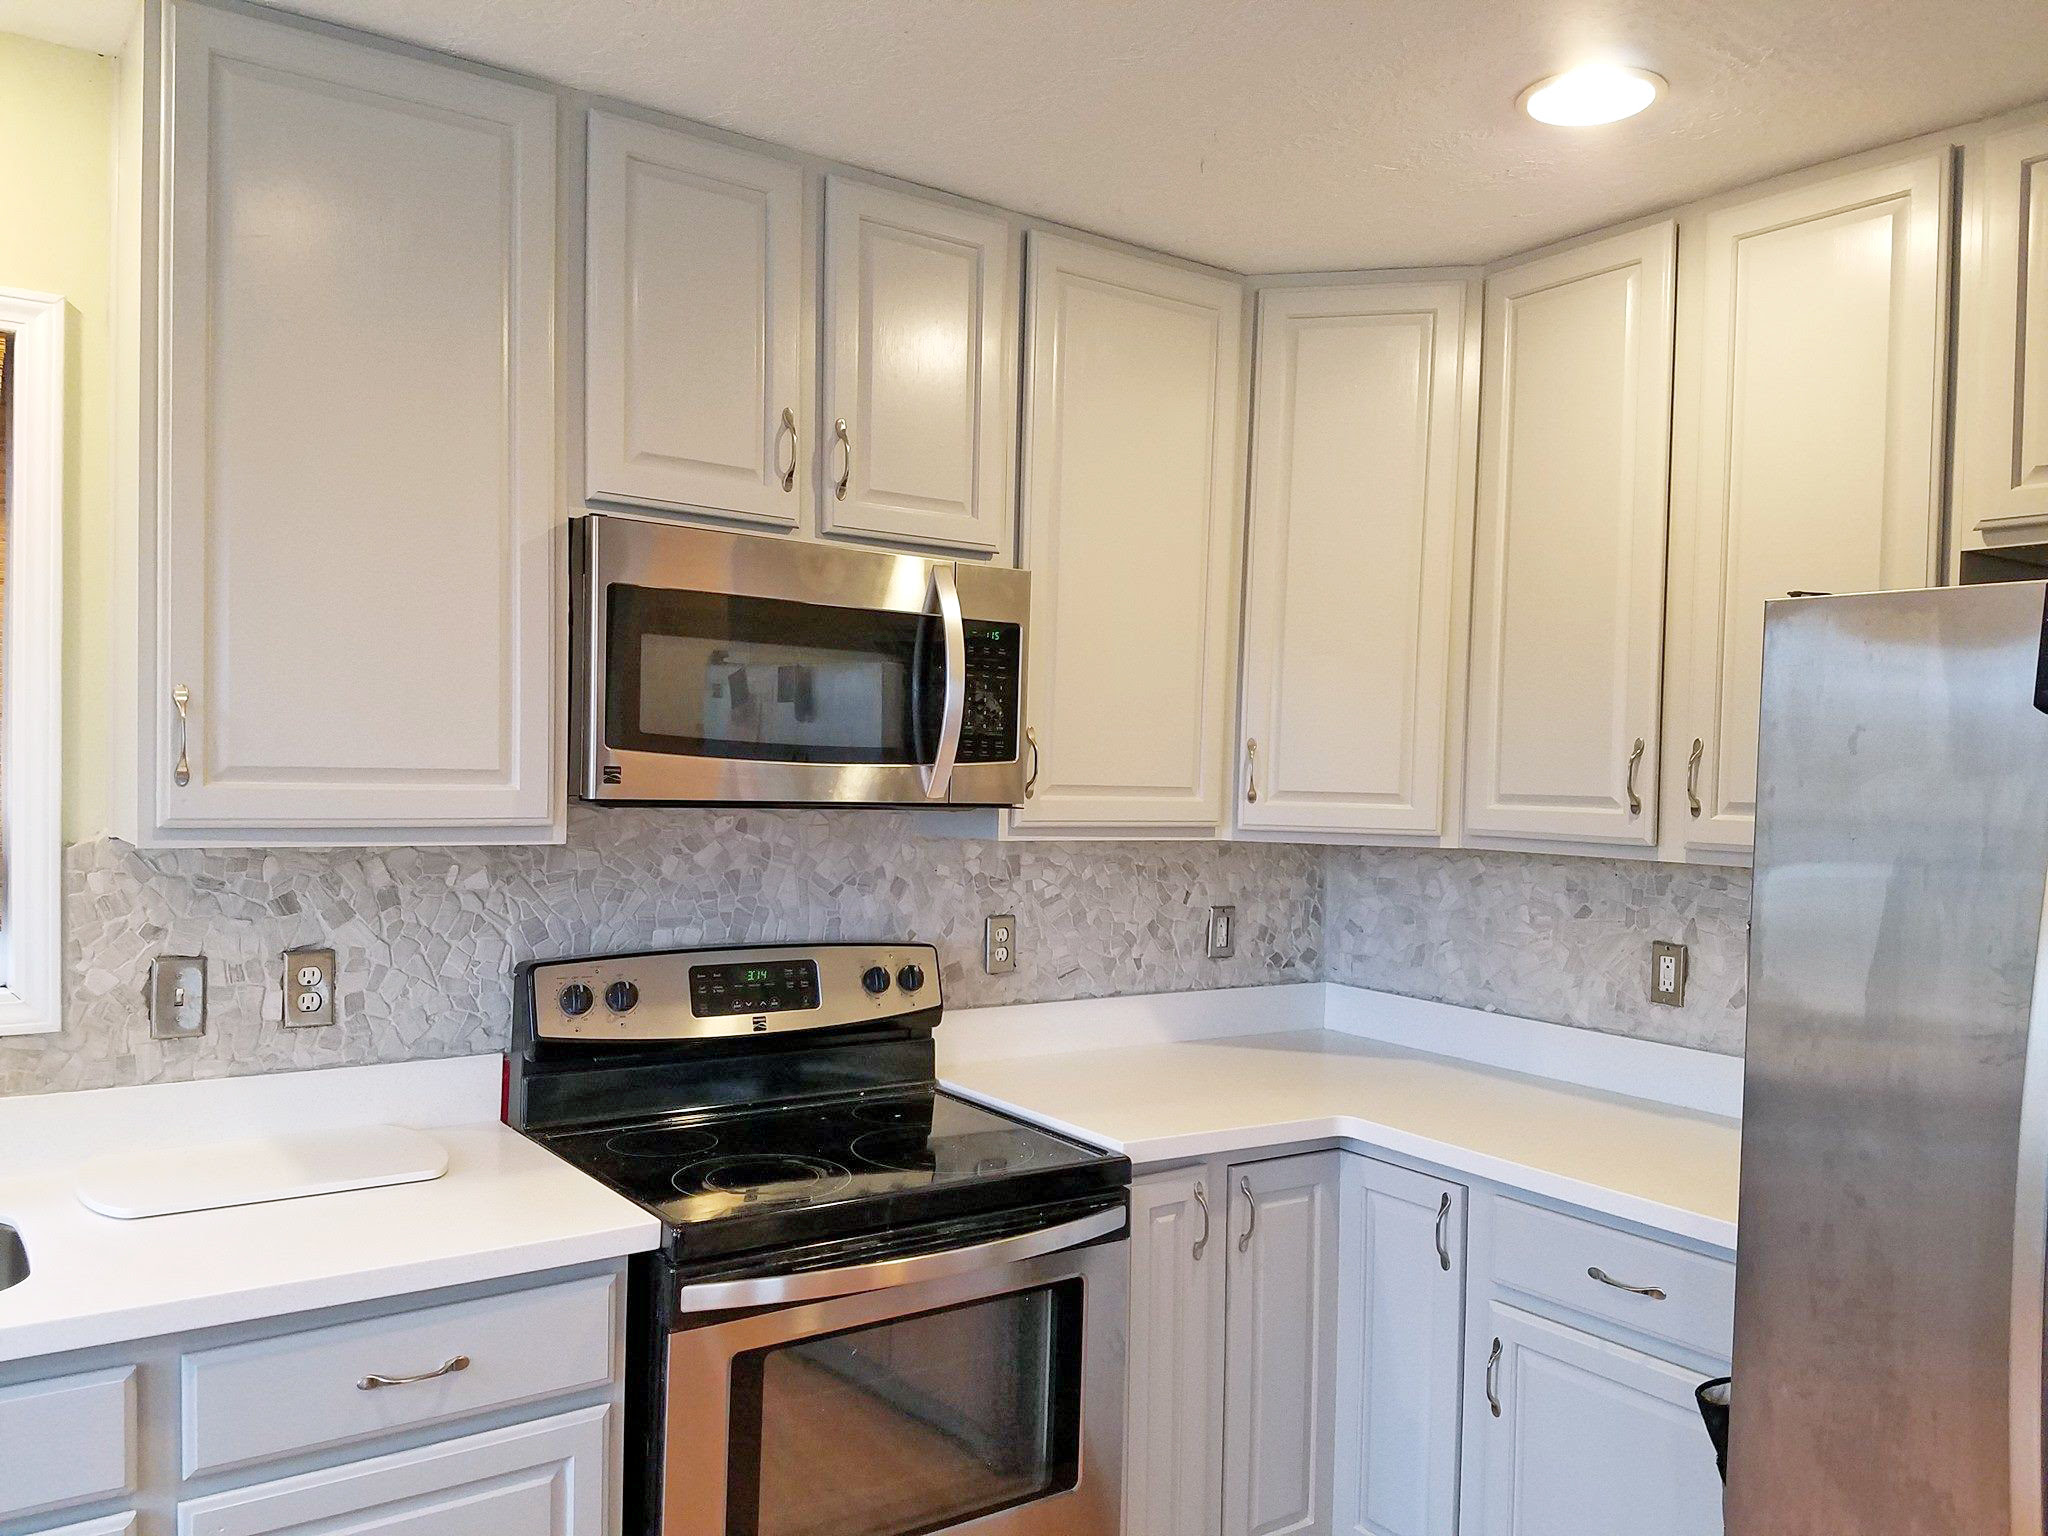 Seagull Gray Kitchen Cabinet Makeover | General Finishes ...